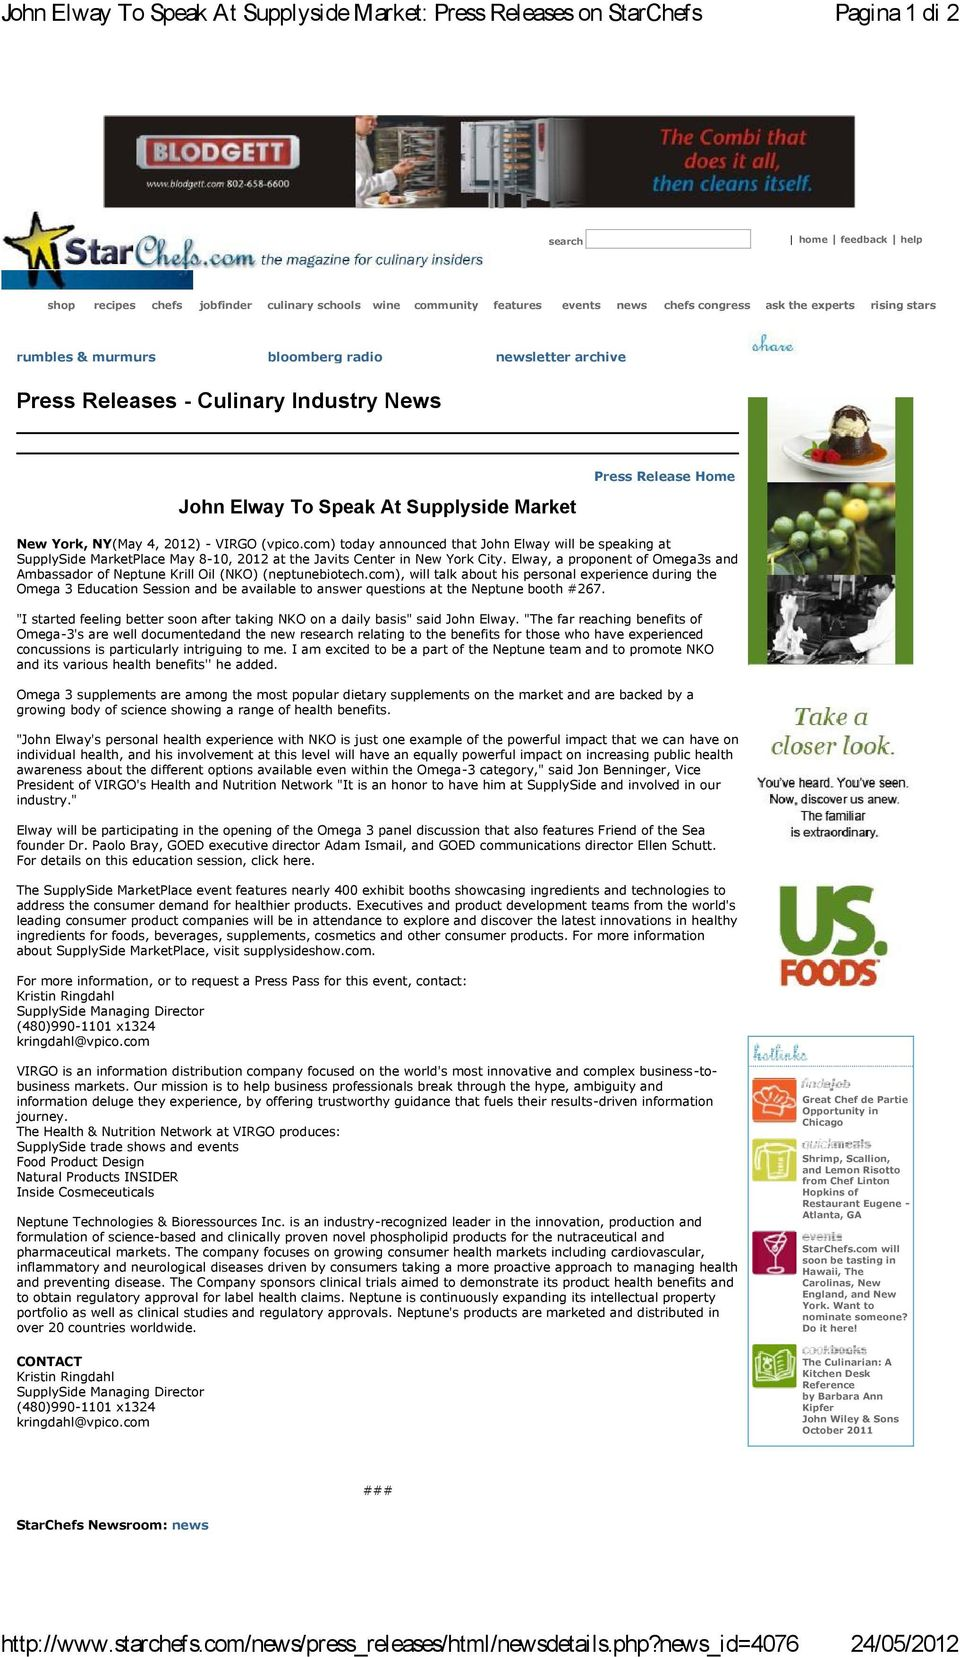 murmurs bloomberg radio newsletter archive Press Releases - Culinary Industry News John Elway To Speak At Supplyside Market Press Release Home New York, NY(May 4, 2012) - VIRGO (vpico.